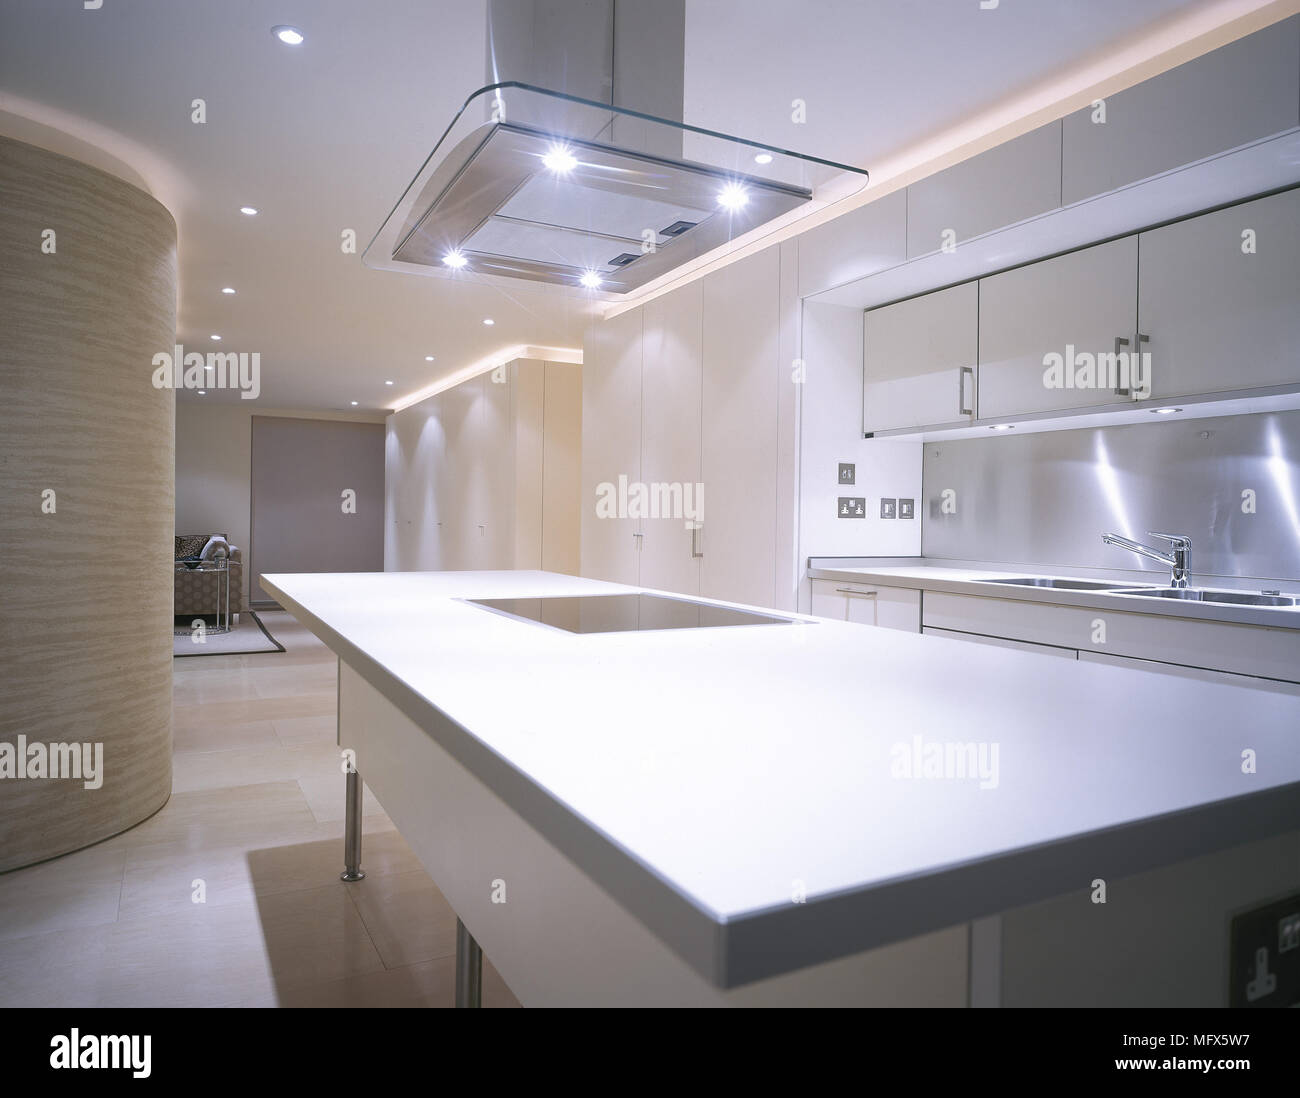 White Kitchen Cabinets Light Floor: Modern, Open Kitchen With A Tiled Floor, White Cabinets